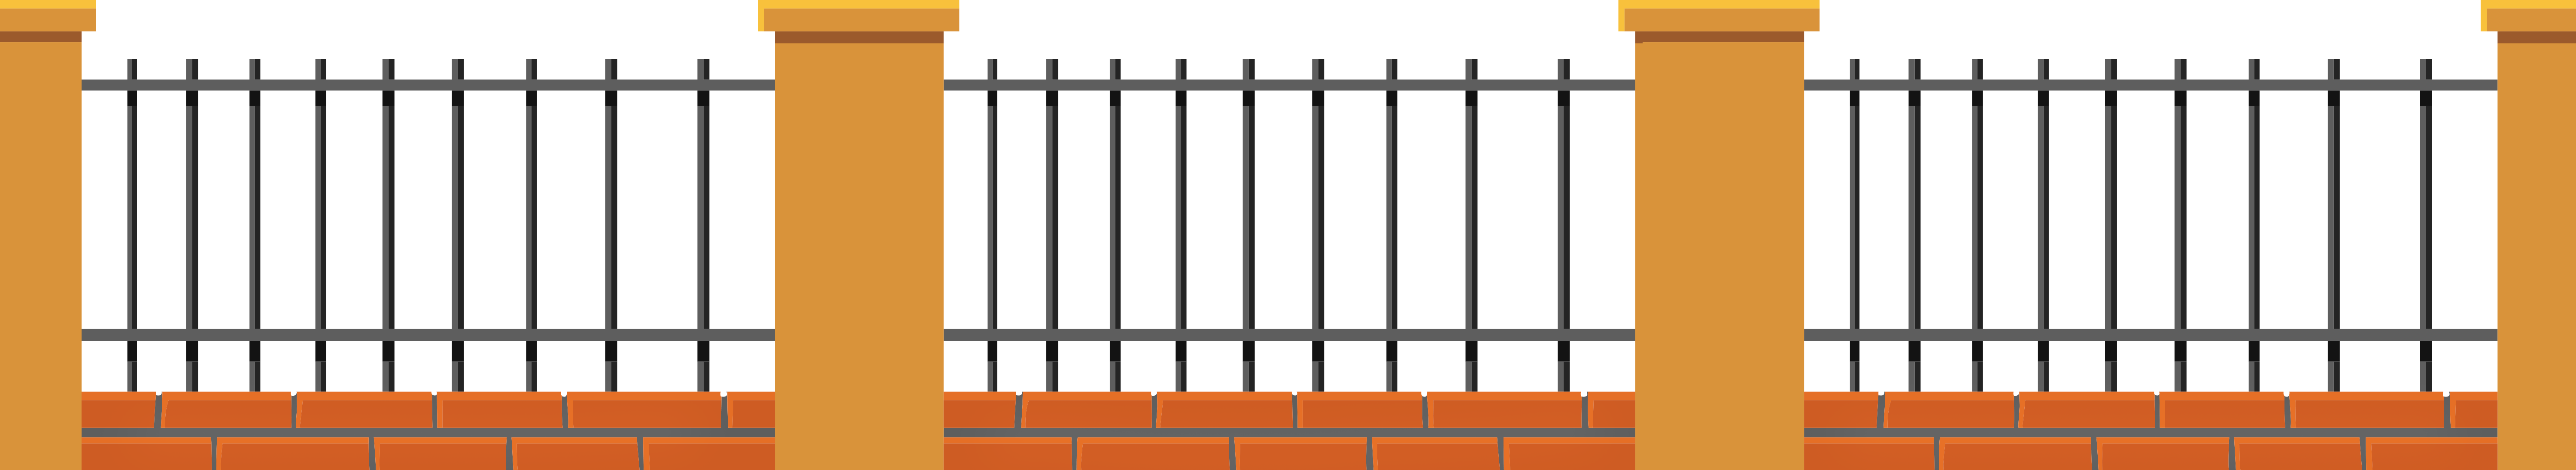 School fence clipart jpg black and white library Brick Fence PNG Image | Gallery Yopriceville - High-Quality Images ... jpg black and white library